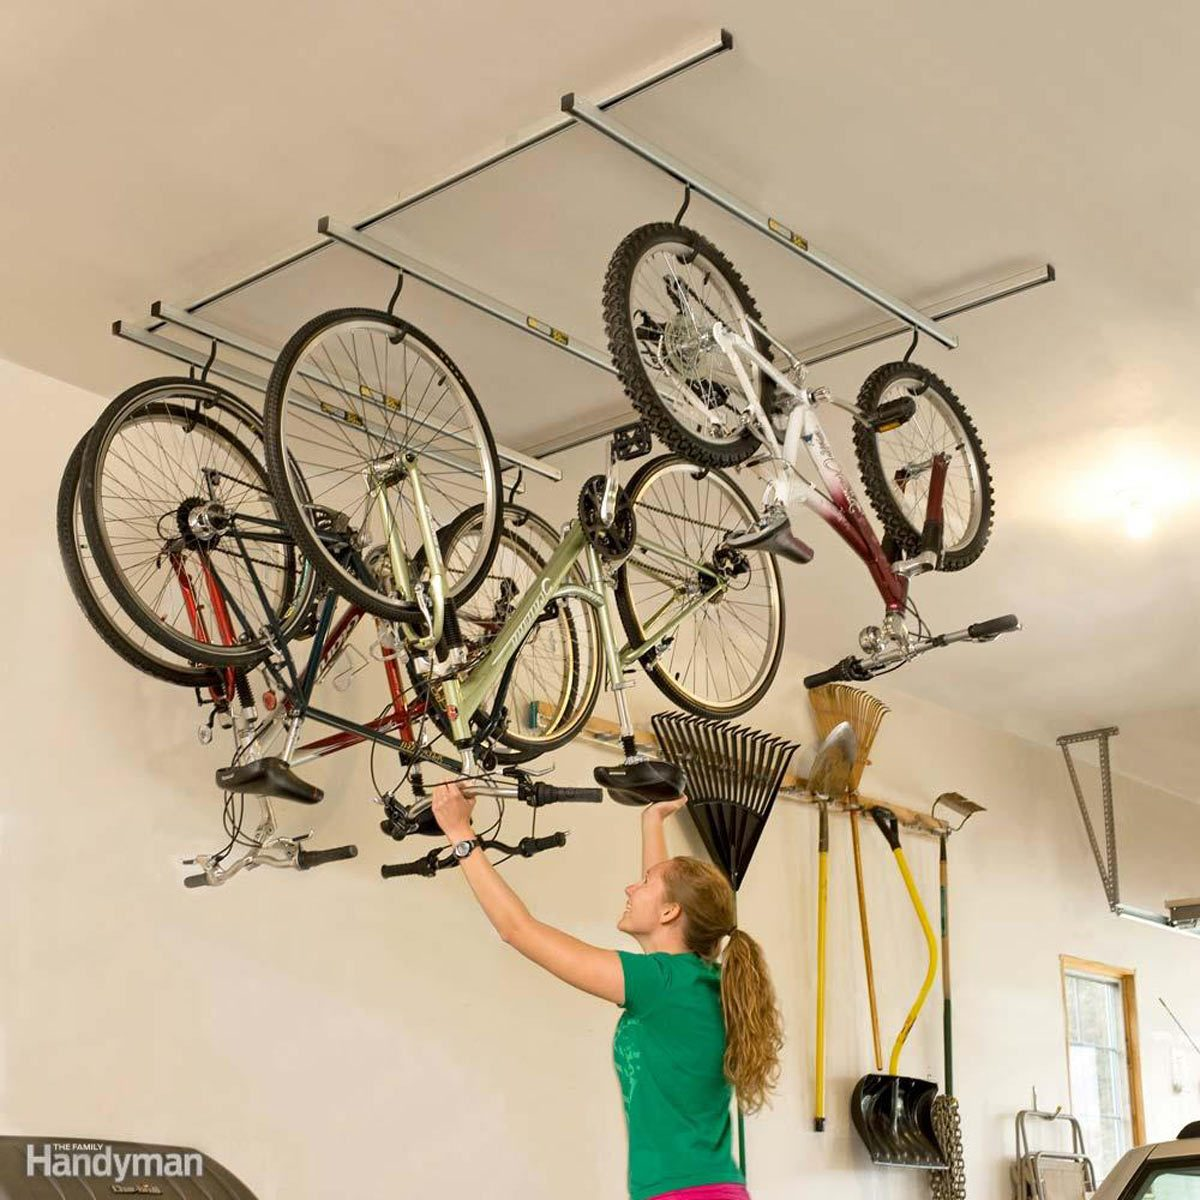 Tidy Garage Bike Rack Installation 51 Brilliant Ways To Organize Your Garage The Family Handyman